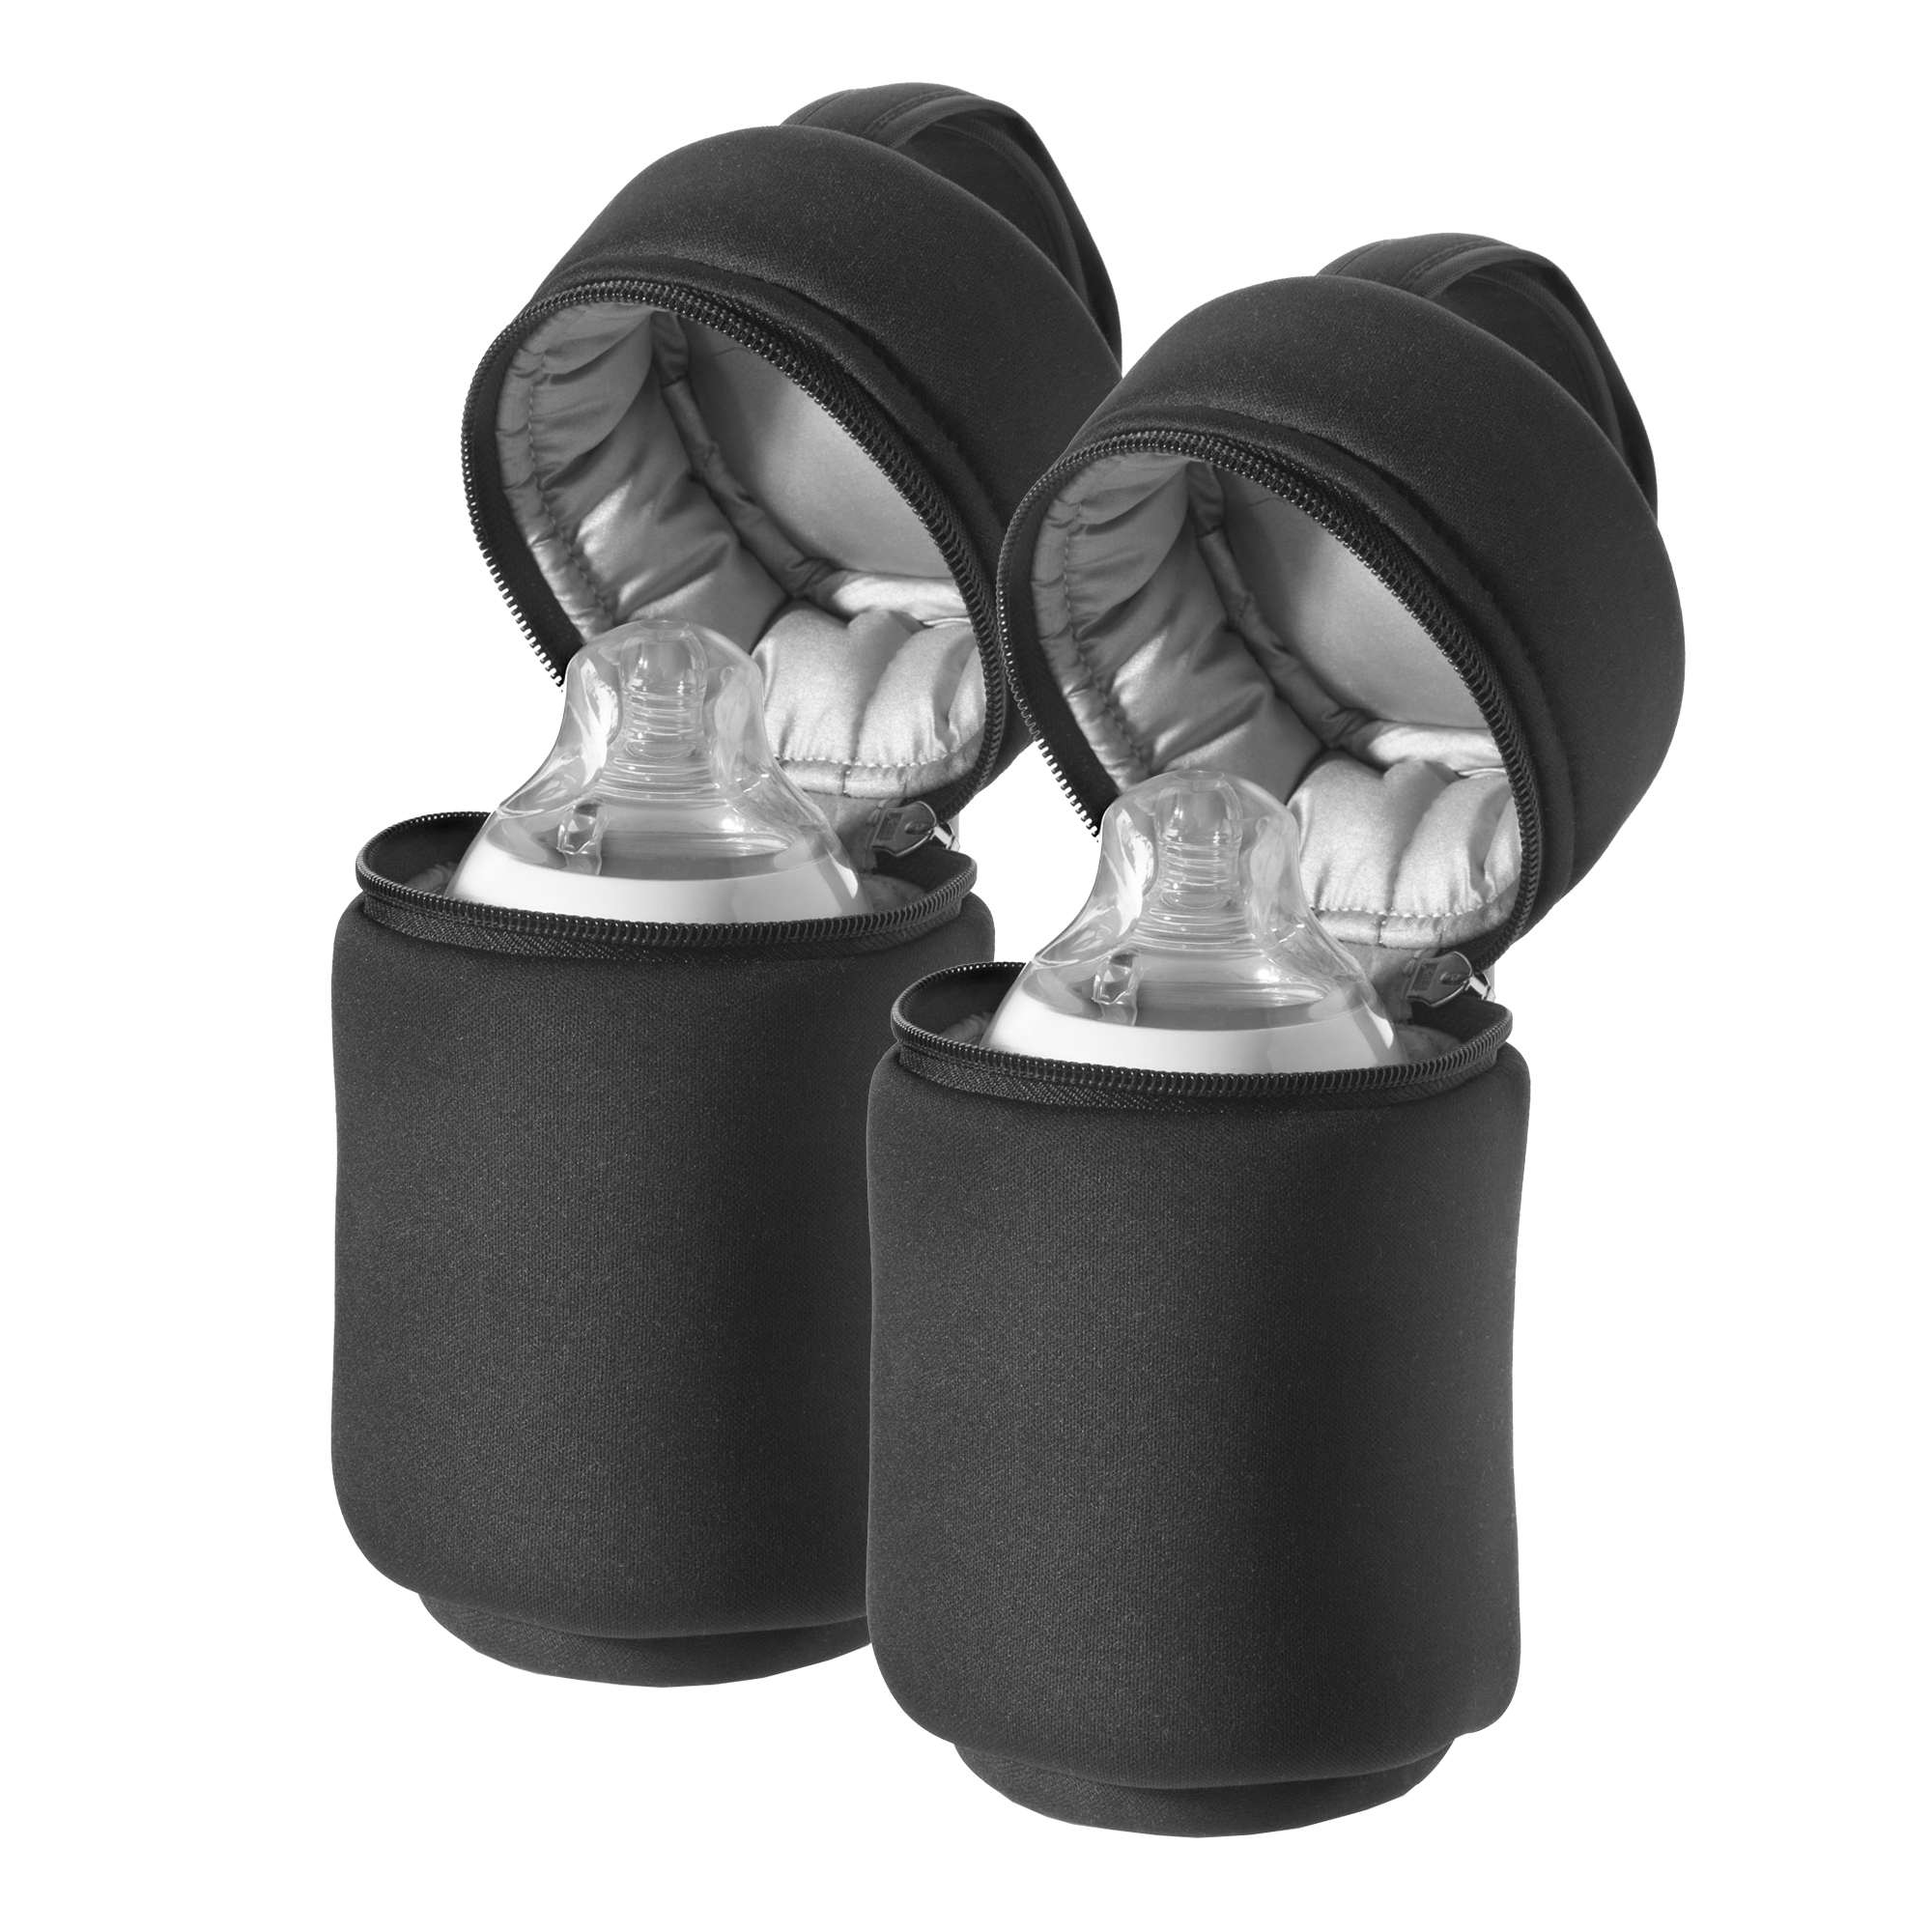 Tommee Tippee Closer to Nature Insulated Bottle Pods, 2-Count